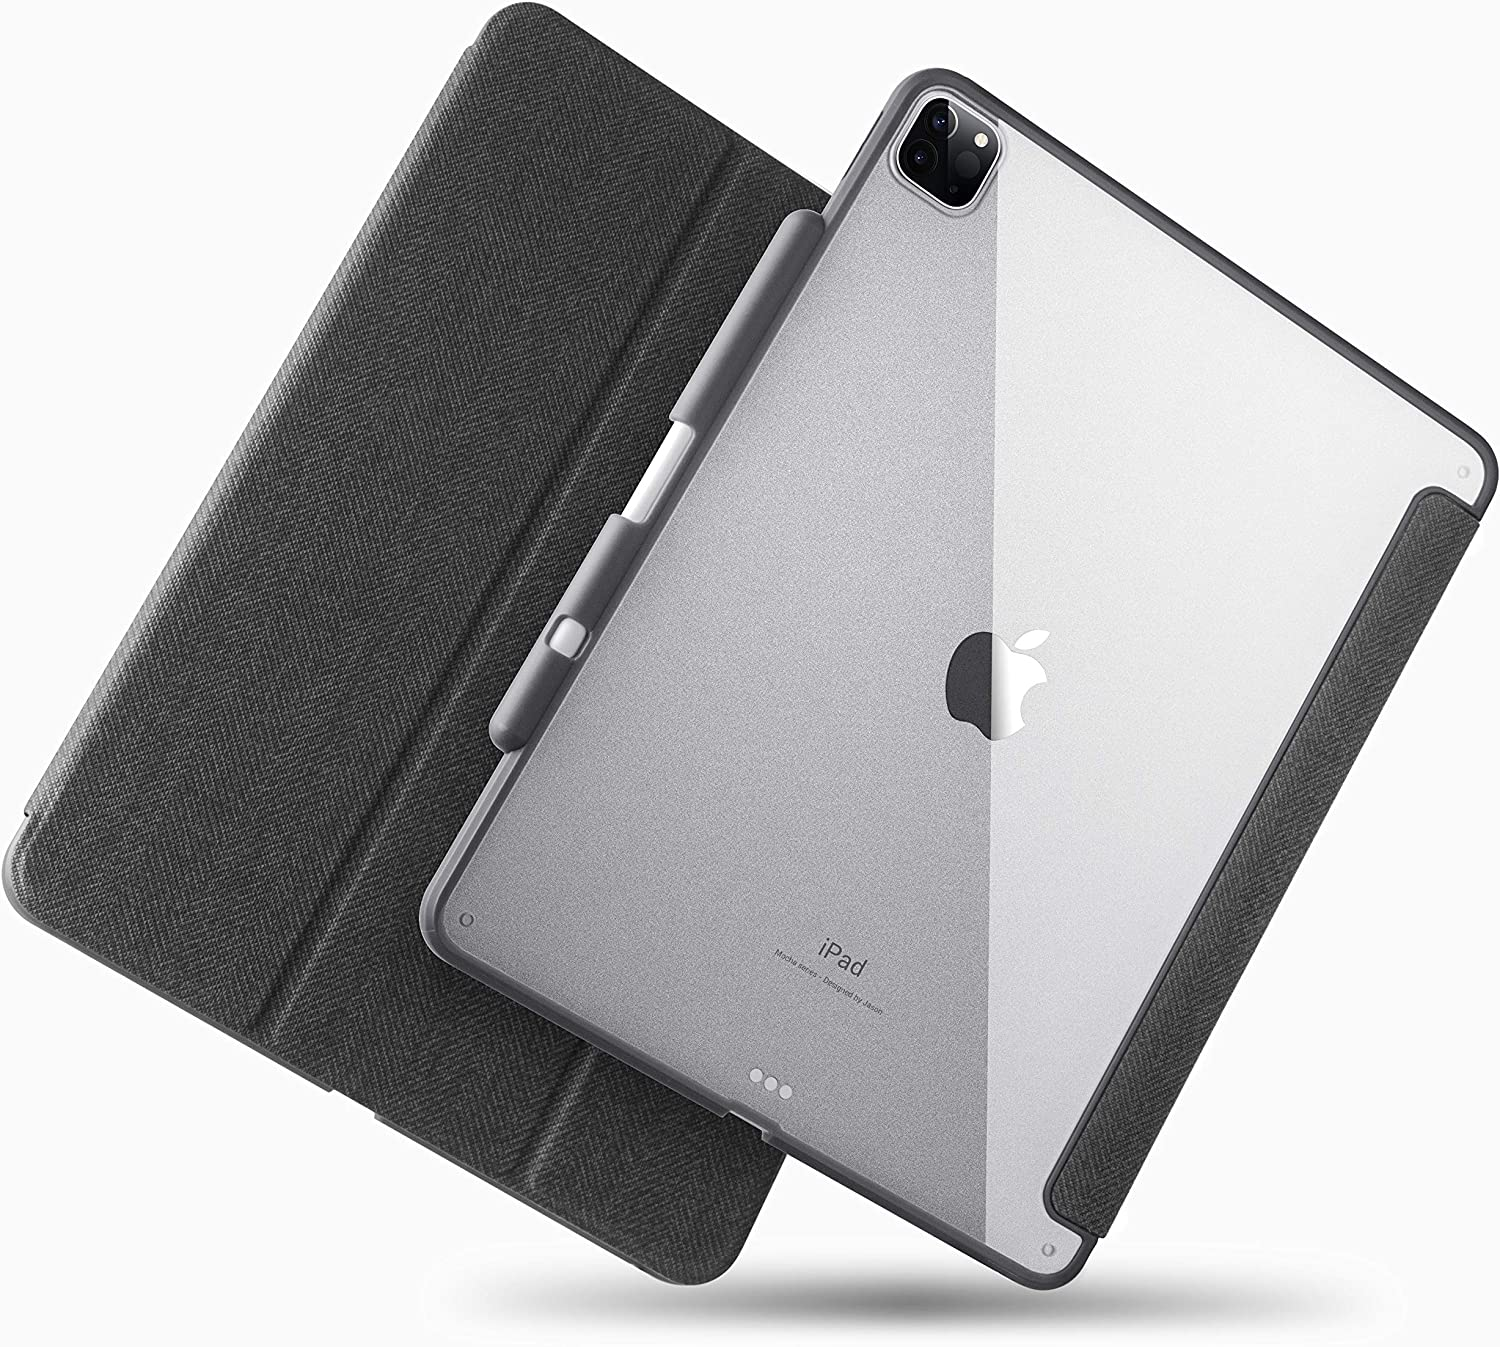 TineeOwl Mocha iPad Pro 12.9 case 2020 & 2018 (4th & 3rd Generation) Ultra-Slim Clear Case with Pencil Holder + Tri-fold Stand Cover, Absorbs Shock, Lightweight (Black)